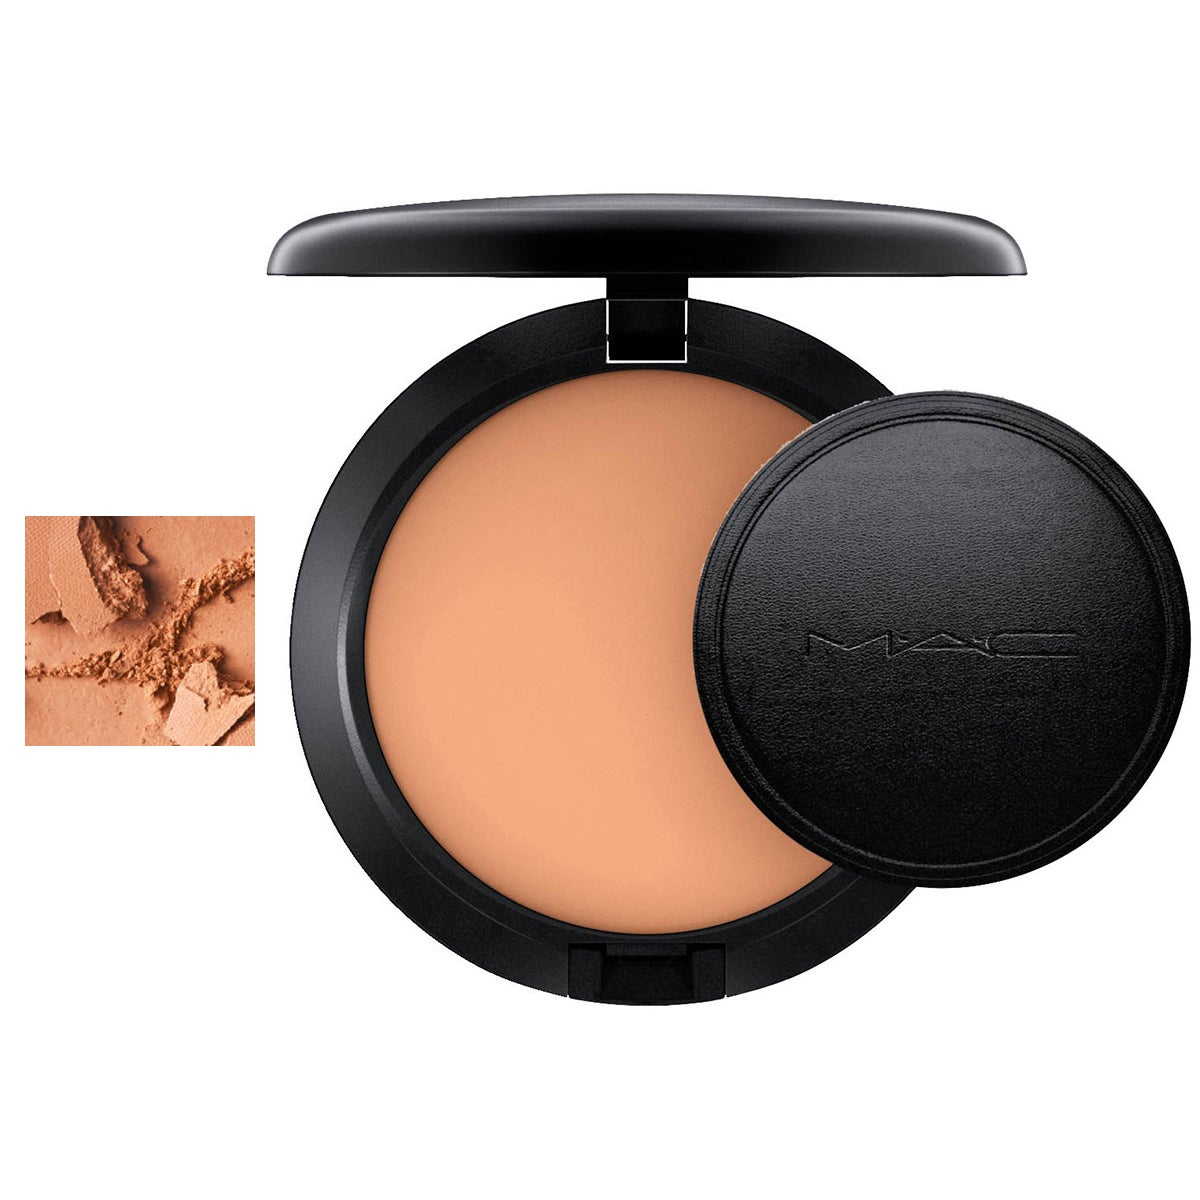 MAC Cosmetics Next To Nothing Face Powder/ Pressed